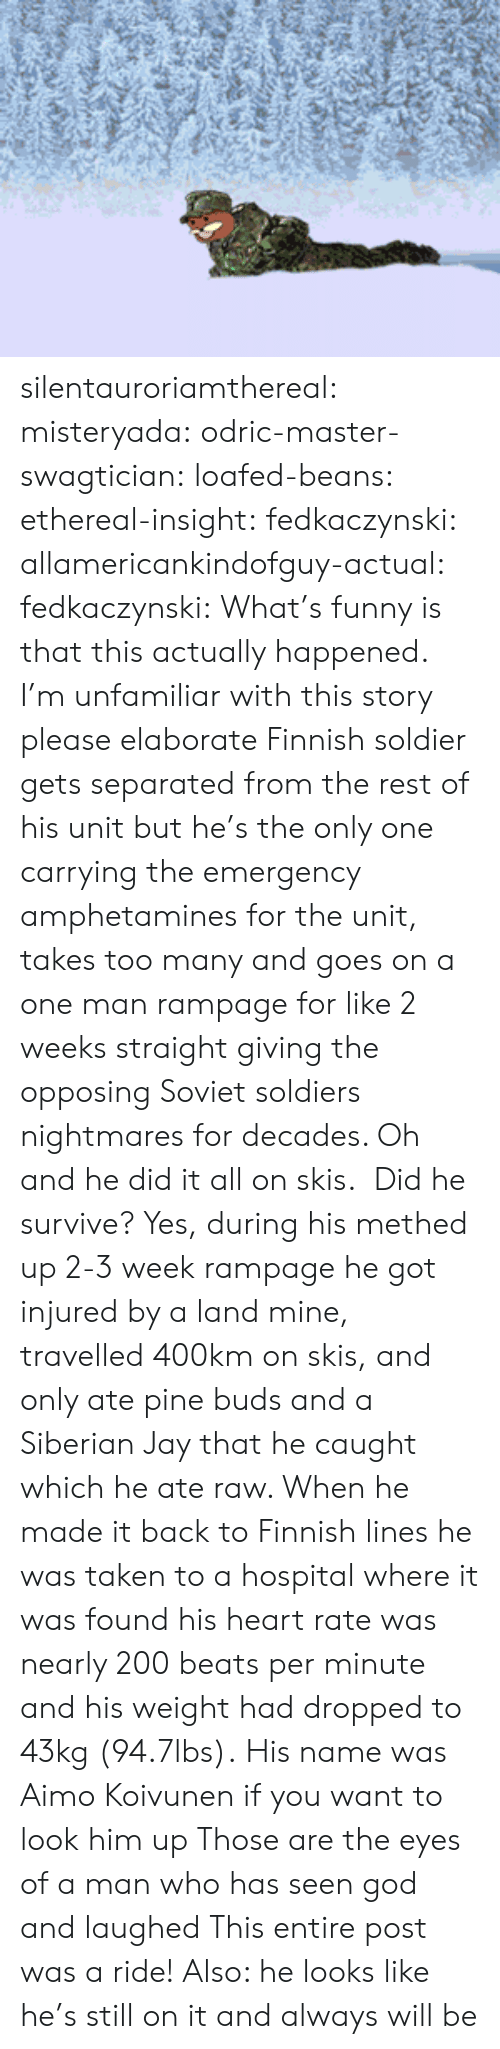 His Name Was: silentauroriamthereal:  misteryada:  odric-master-swagtician:  loafed-beans:  ethereal-insight:  fedkaczynski:  allamericankindofguy-actual:  fedkaczynski:  What's funny is that this actually happened.   I'm unfamiliar with this story please elaborate   Finnish soldier gets separated from the rest of his unit but he's the only one carrying the emergency amphetamines for the unit, takes too many and goes on a one man rampage for like 2 weeks straight giving the opposing Soviet soldiers nightmares for decades. Oh and he did it all on skis.    Did he survive?  Yes, during his methed up 2-3 week rampage he got injured by a land mine, travelled 400km on skis, and only ate pine buds and a Siberian Jay that he caught which he ate raw. When he made it back to Finnish lines he was taken to a hospital where it was found his heart rate was nearly 200 beats per minute and his weight had dropped to 43kg (94.7lbs).  His name was Aimo Koivunen if you want to look him up  Those are the eyes of a man who has seen god and laughed   This entire post was a ride! Also: he looks like he's still on it and always will be